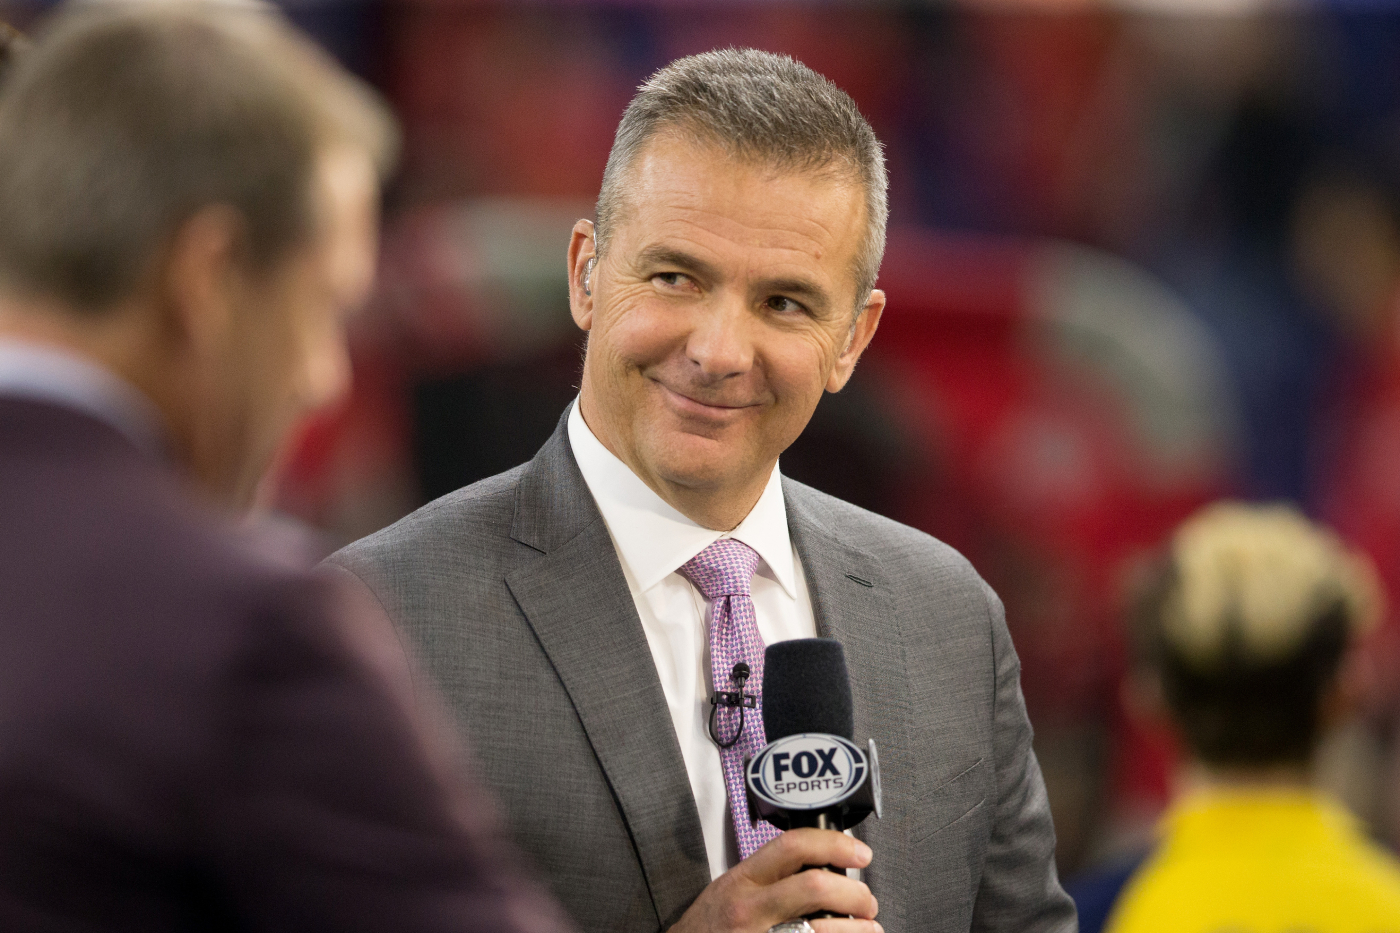 Urban Meyer has become a successful analyst on FOX after having success as a coach at Ohio State and Florida. Could he be done on TV, though?